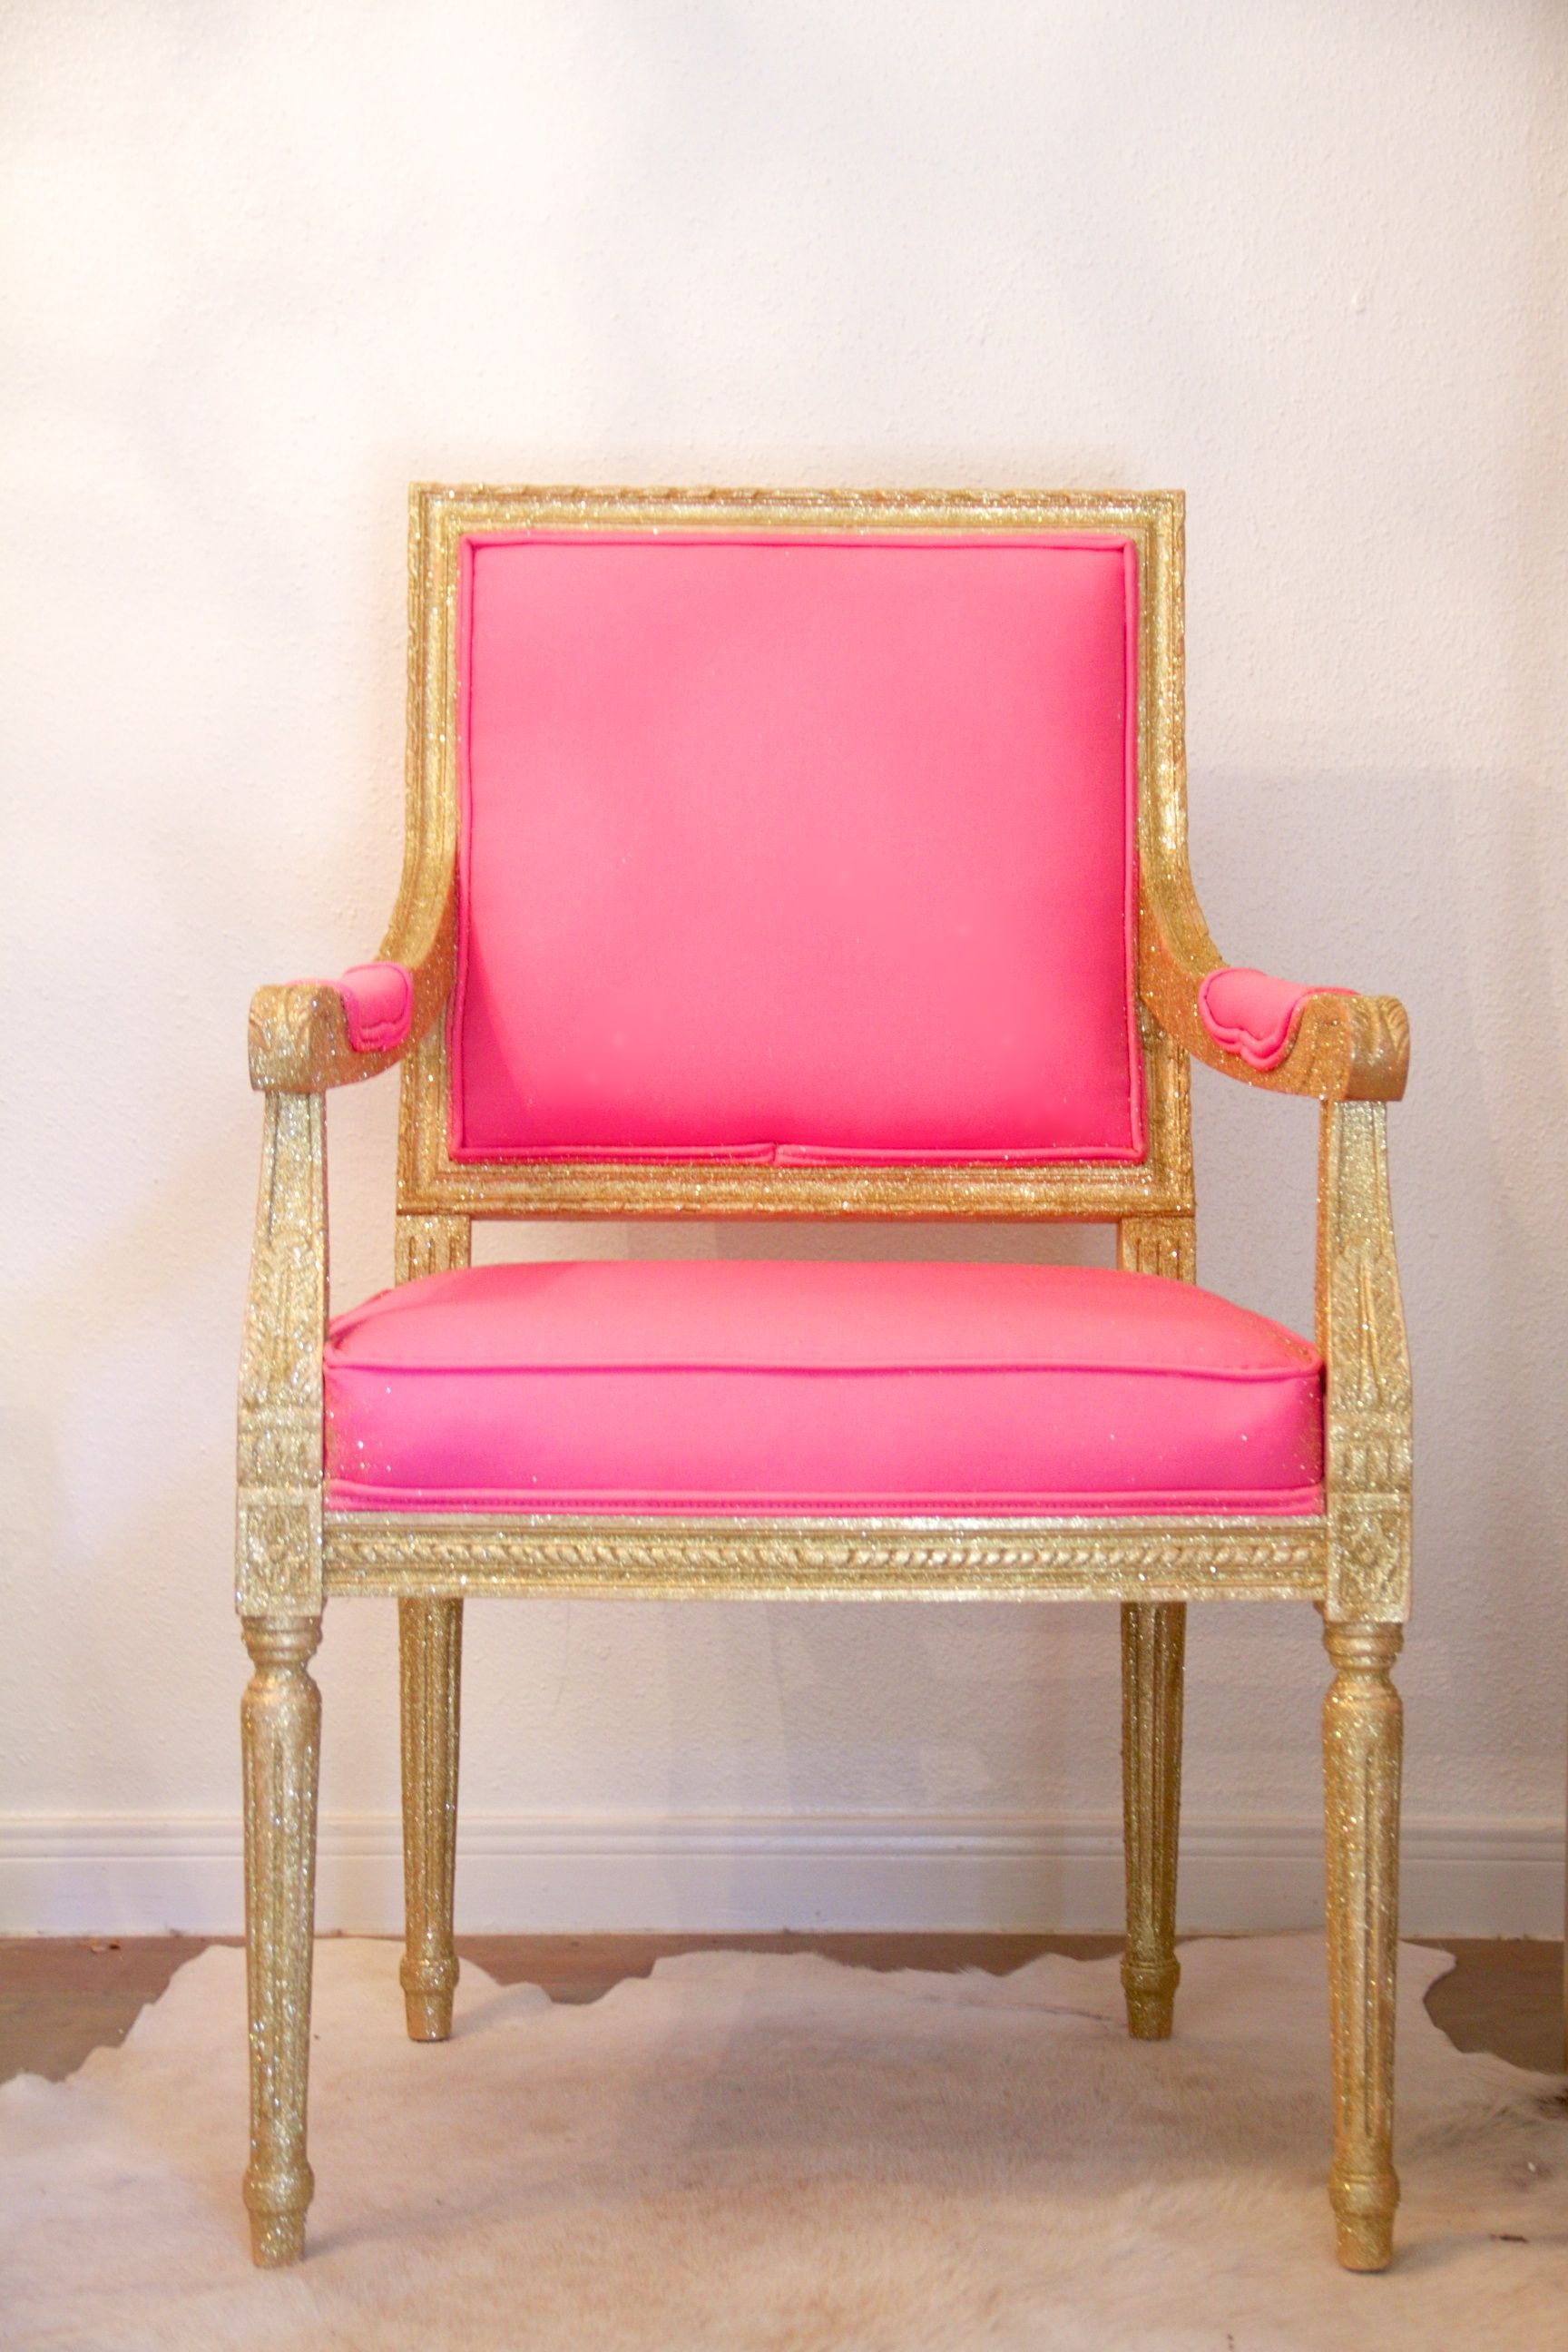 Hot Pink Office Chair Gilded Louis Xvi Chair With Pink Upholstery Home Decor